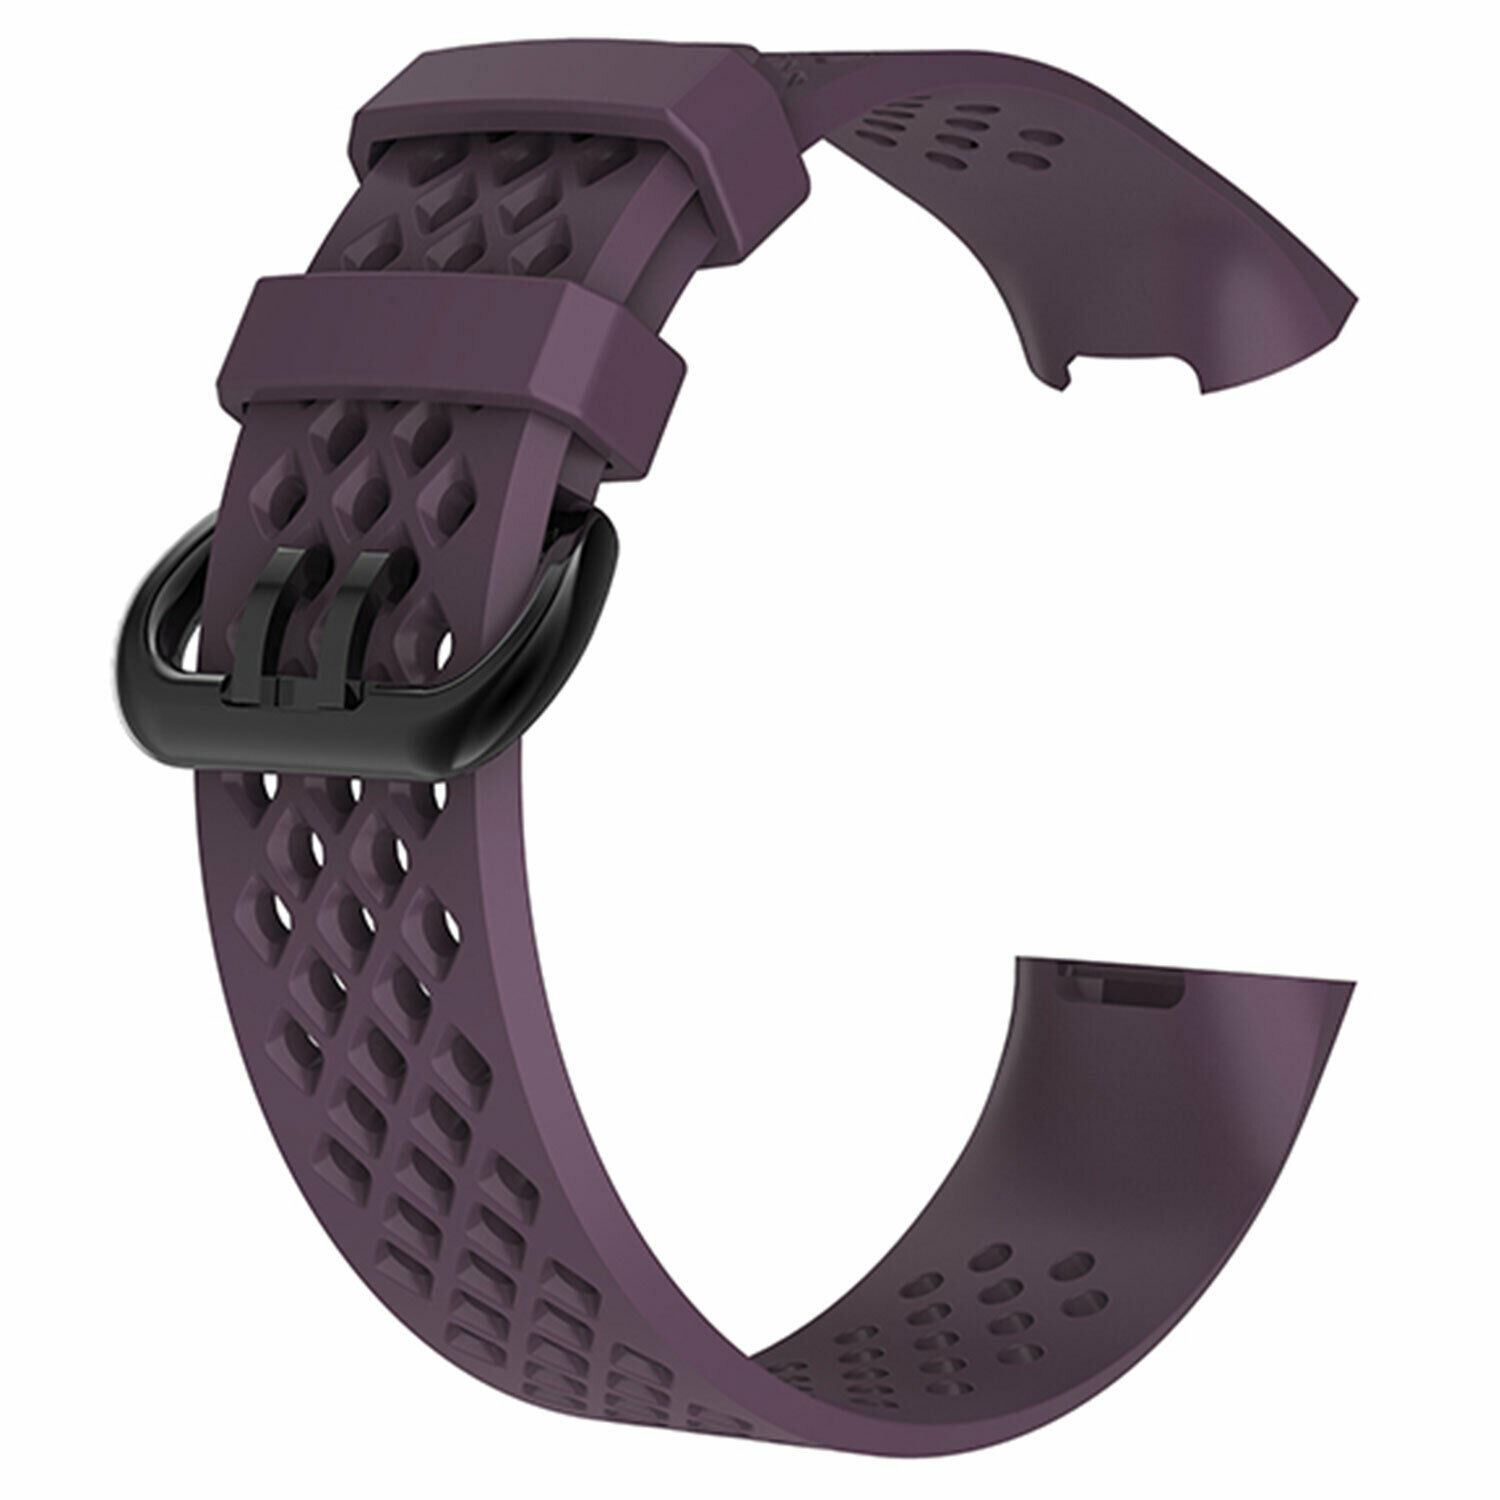 Aquarius Holes Silicone Watch Band for Fitbit Charge 3 Purple Large